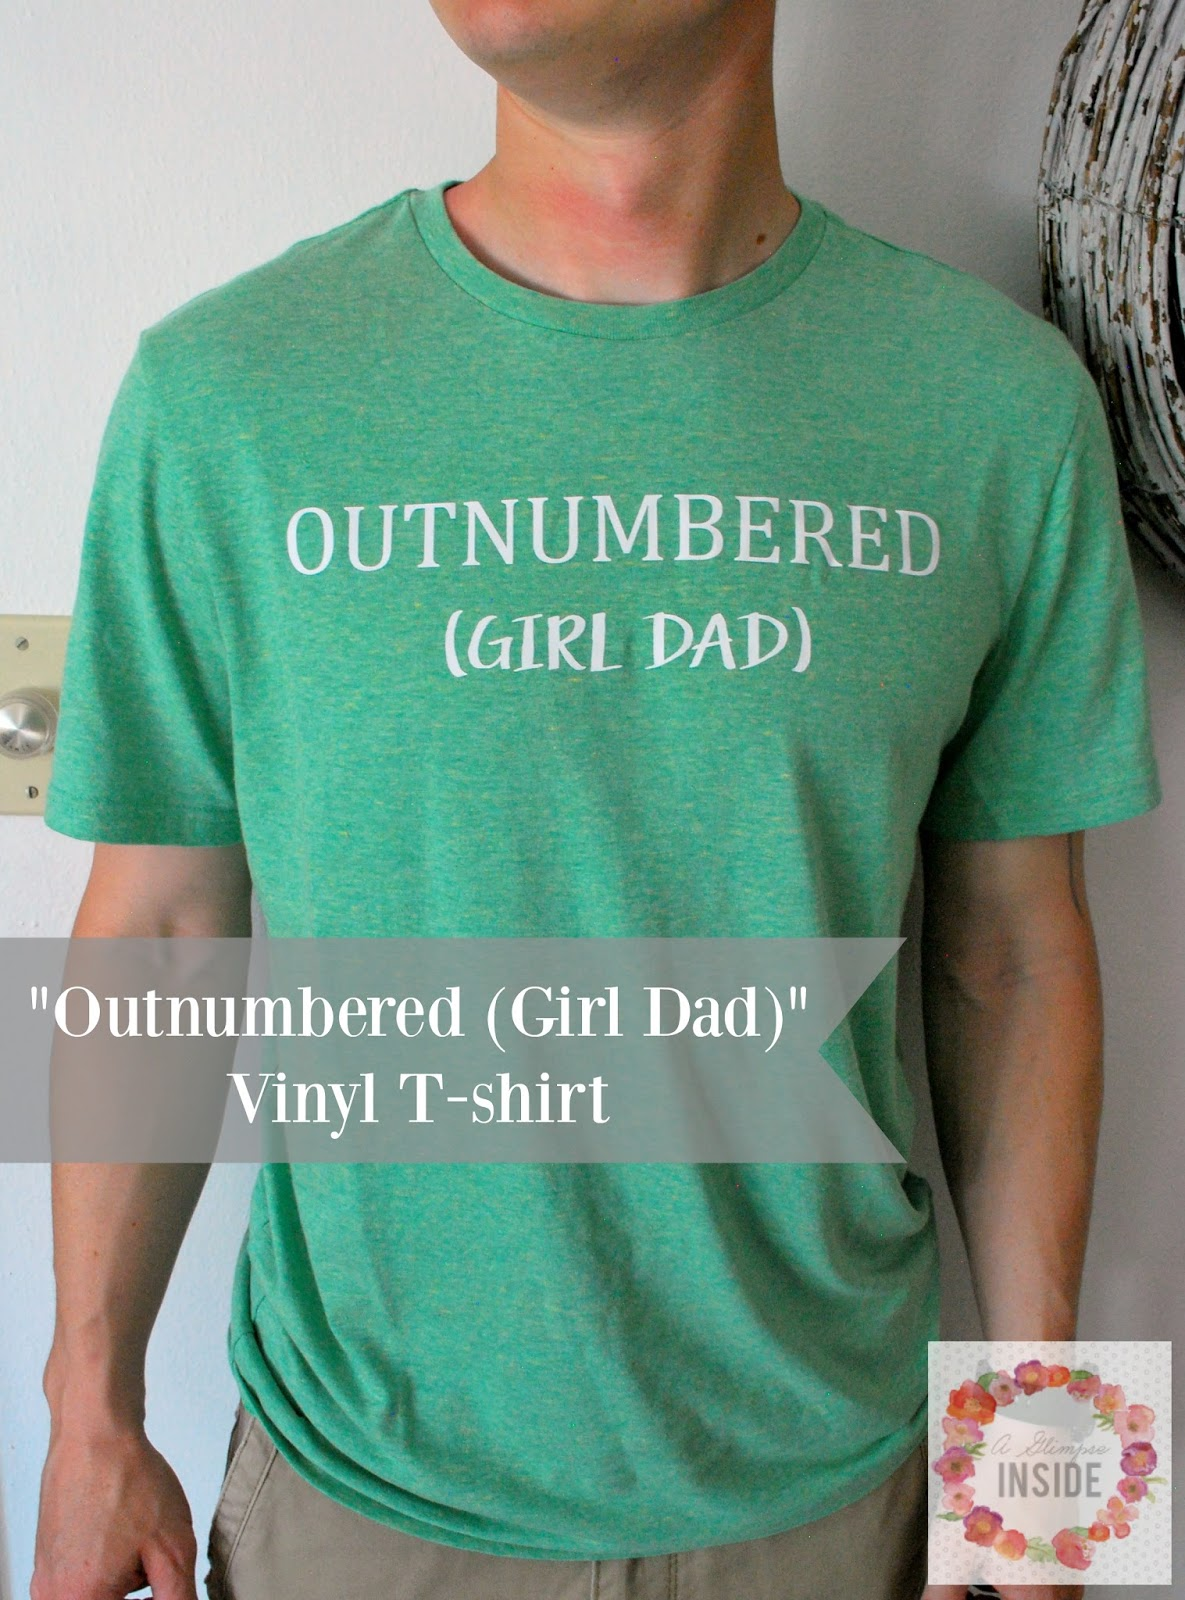 http://www.aglimpseinsideblog.com/2016/06/outnumbered-girl-dad-vinyl-t-shirt.html